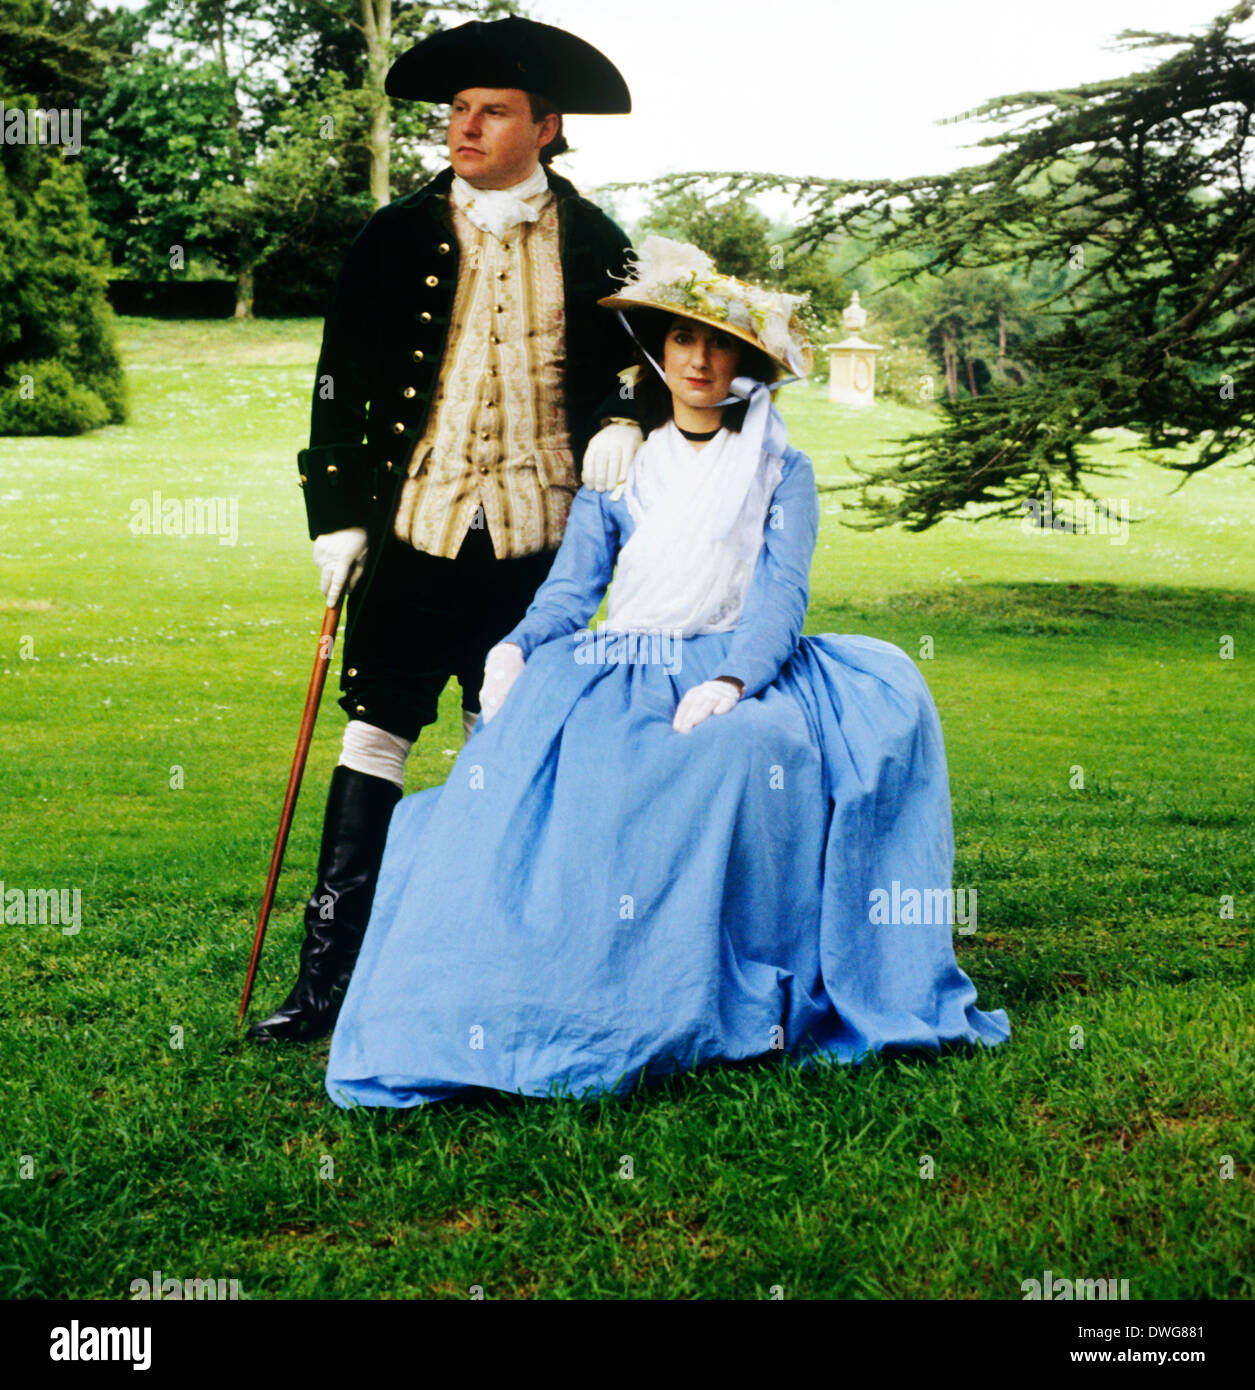 18th Century English Gentry in landscaped parkland, Audley End House gardens, Essex England UK, historical re-enactment costume costumes fashion fashions gentleman and lady - Stock Image